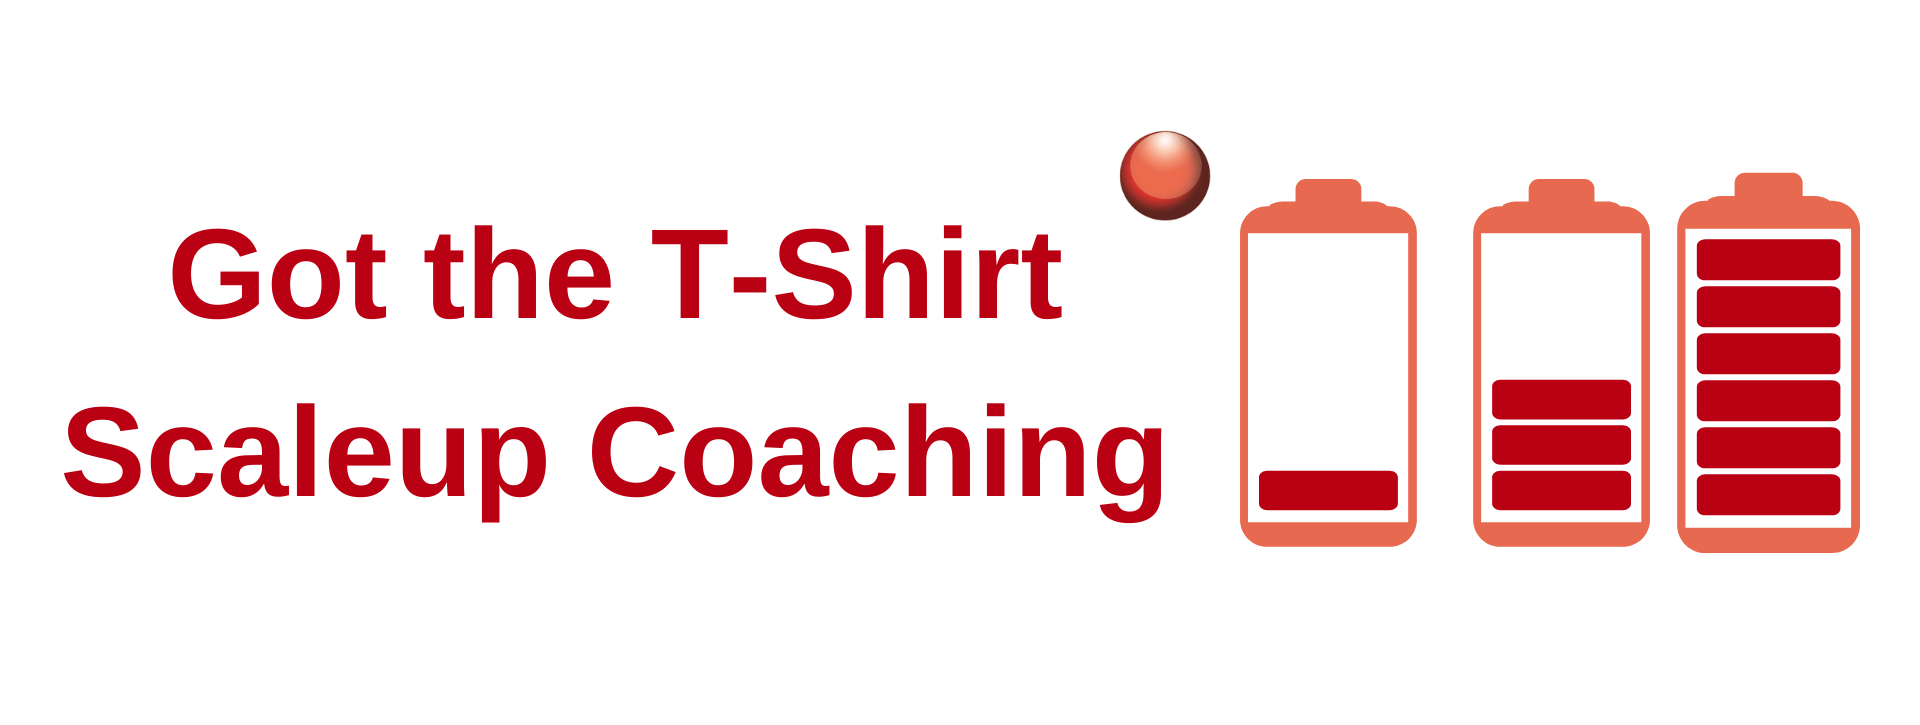 Got the T Shirt Scaleup Coaching